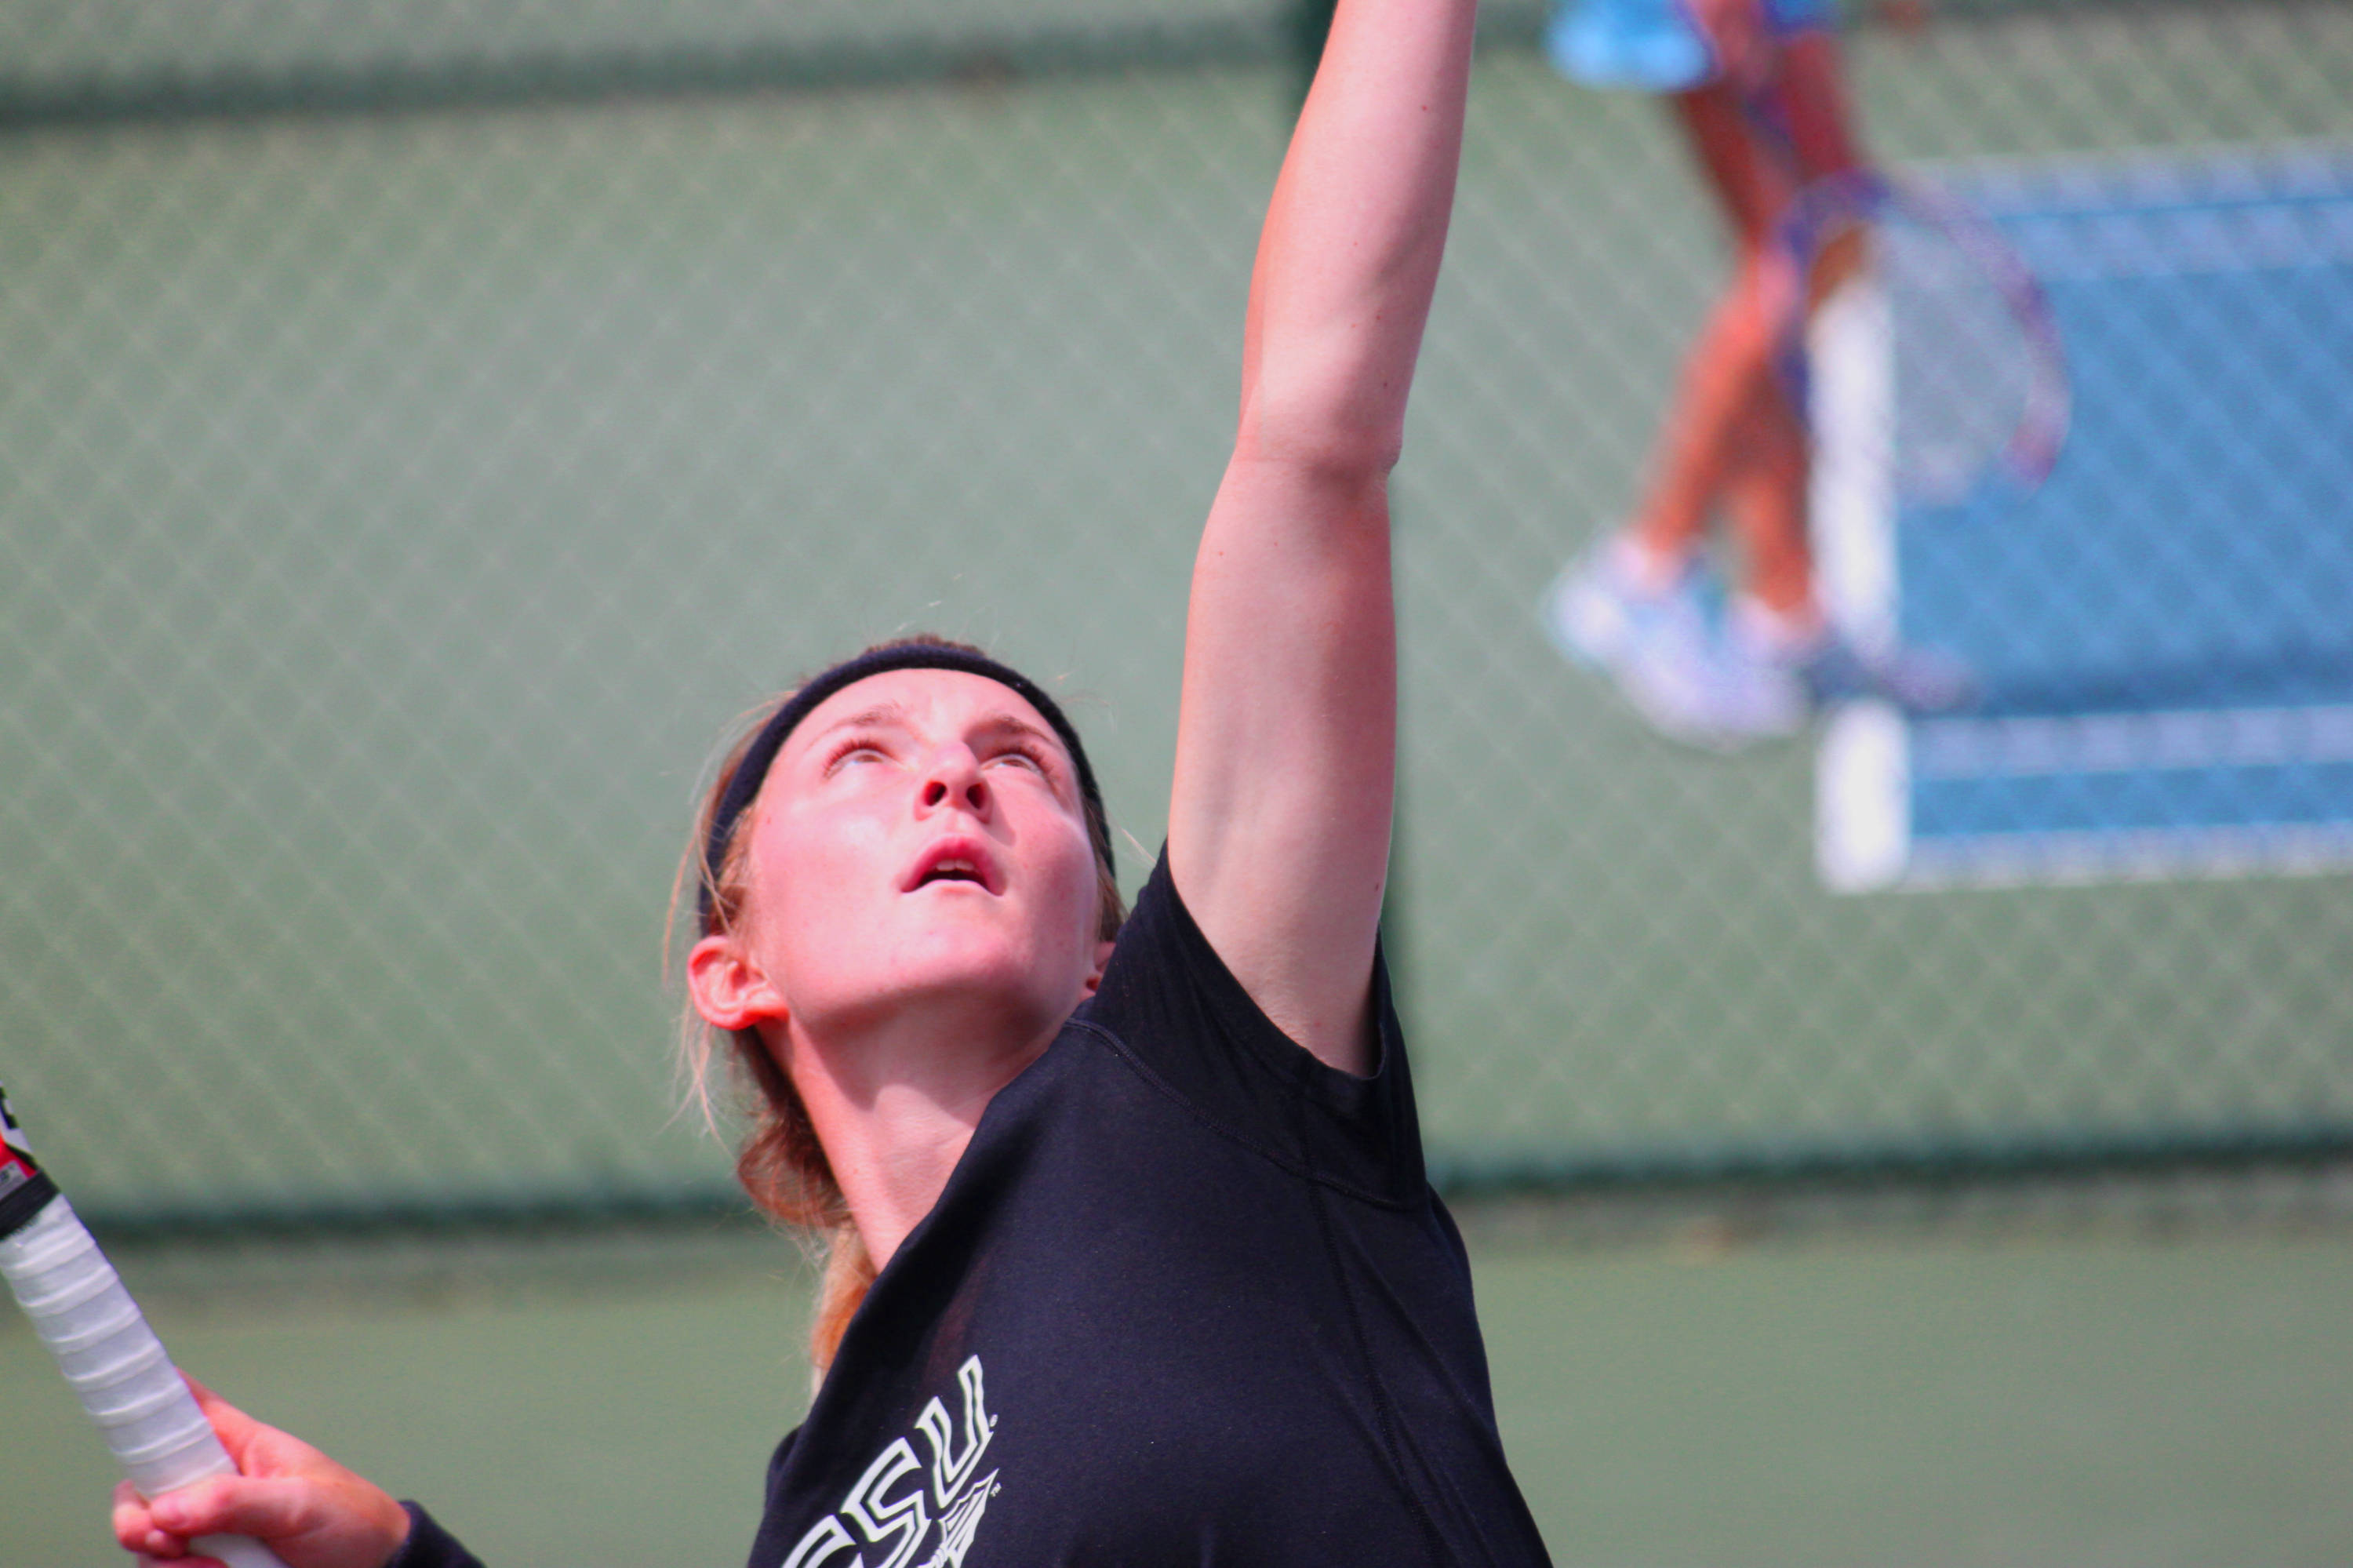 Ruth Seaborne unleashing her wicked serve.